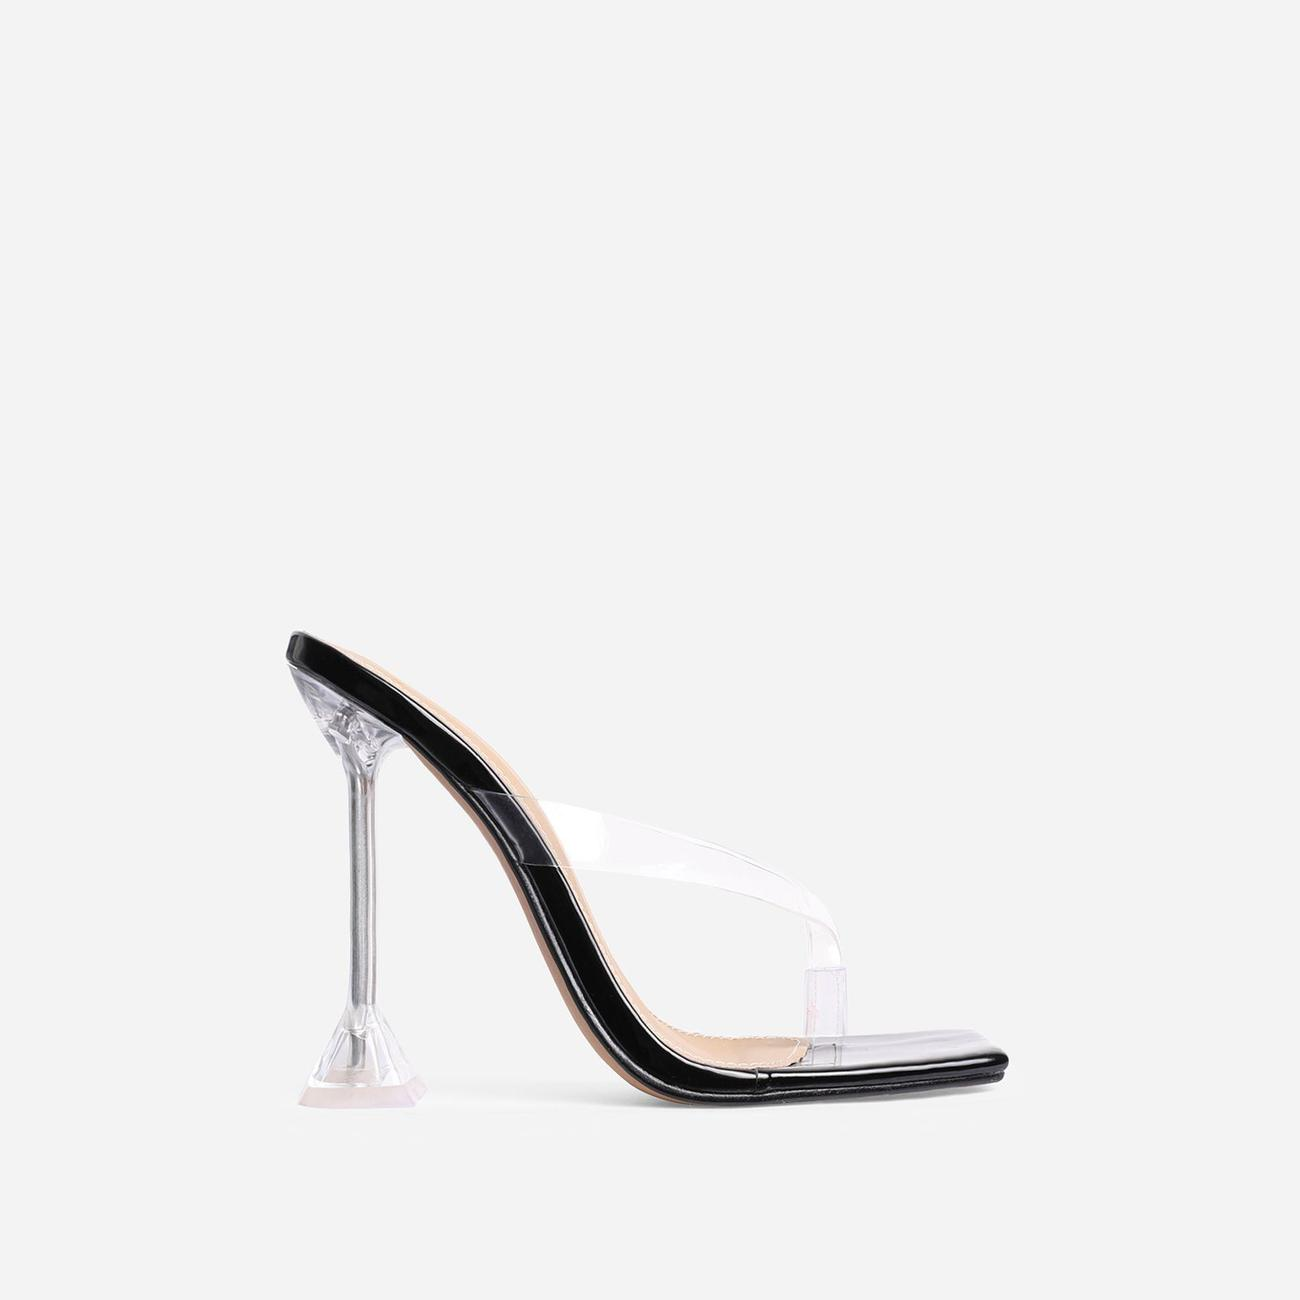 Jalen Square Toe Thong Clear Perspex Pyramid Heel Mule In Black Patent Image 1